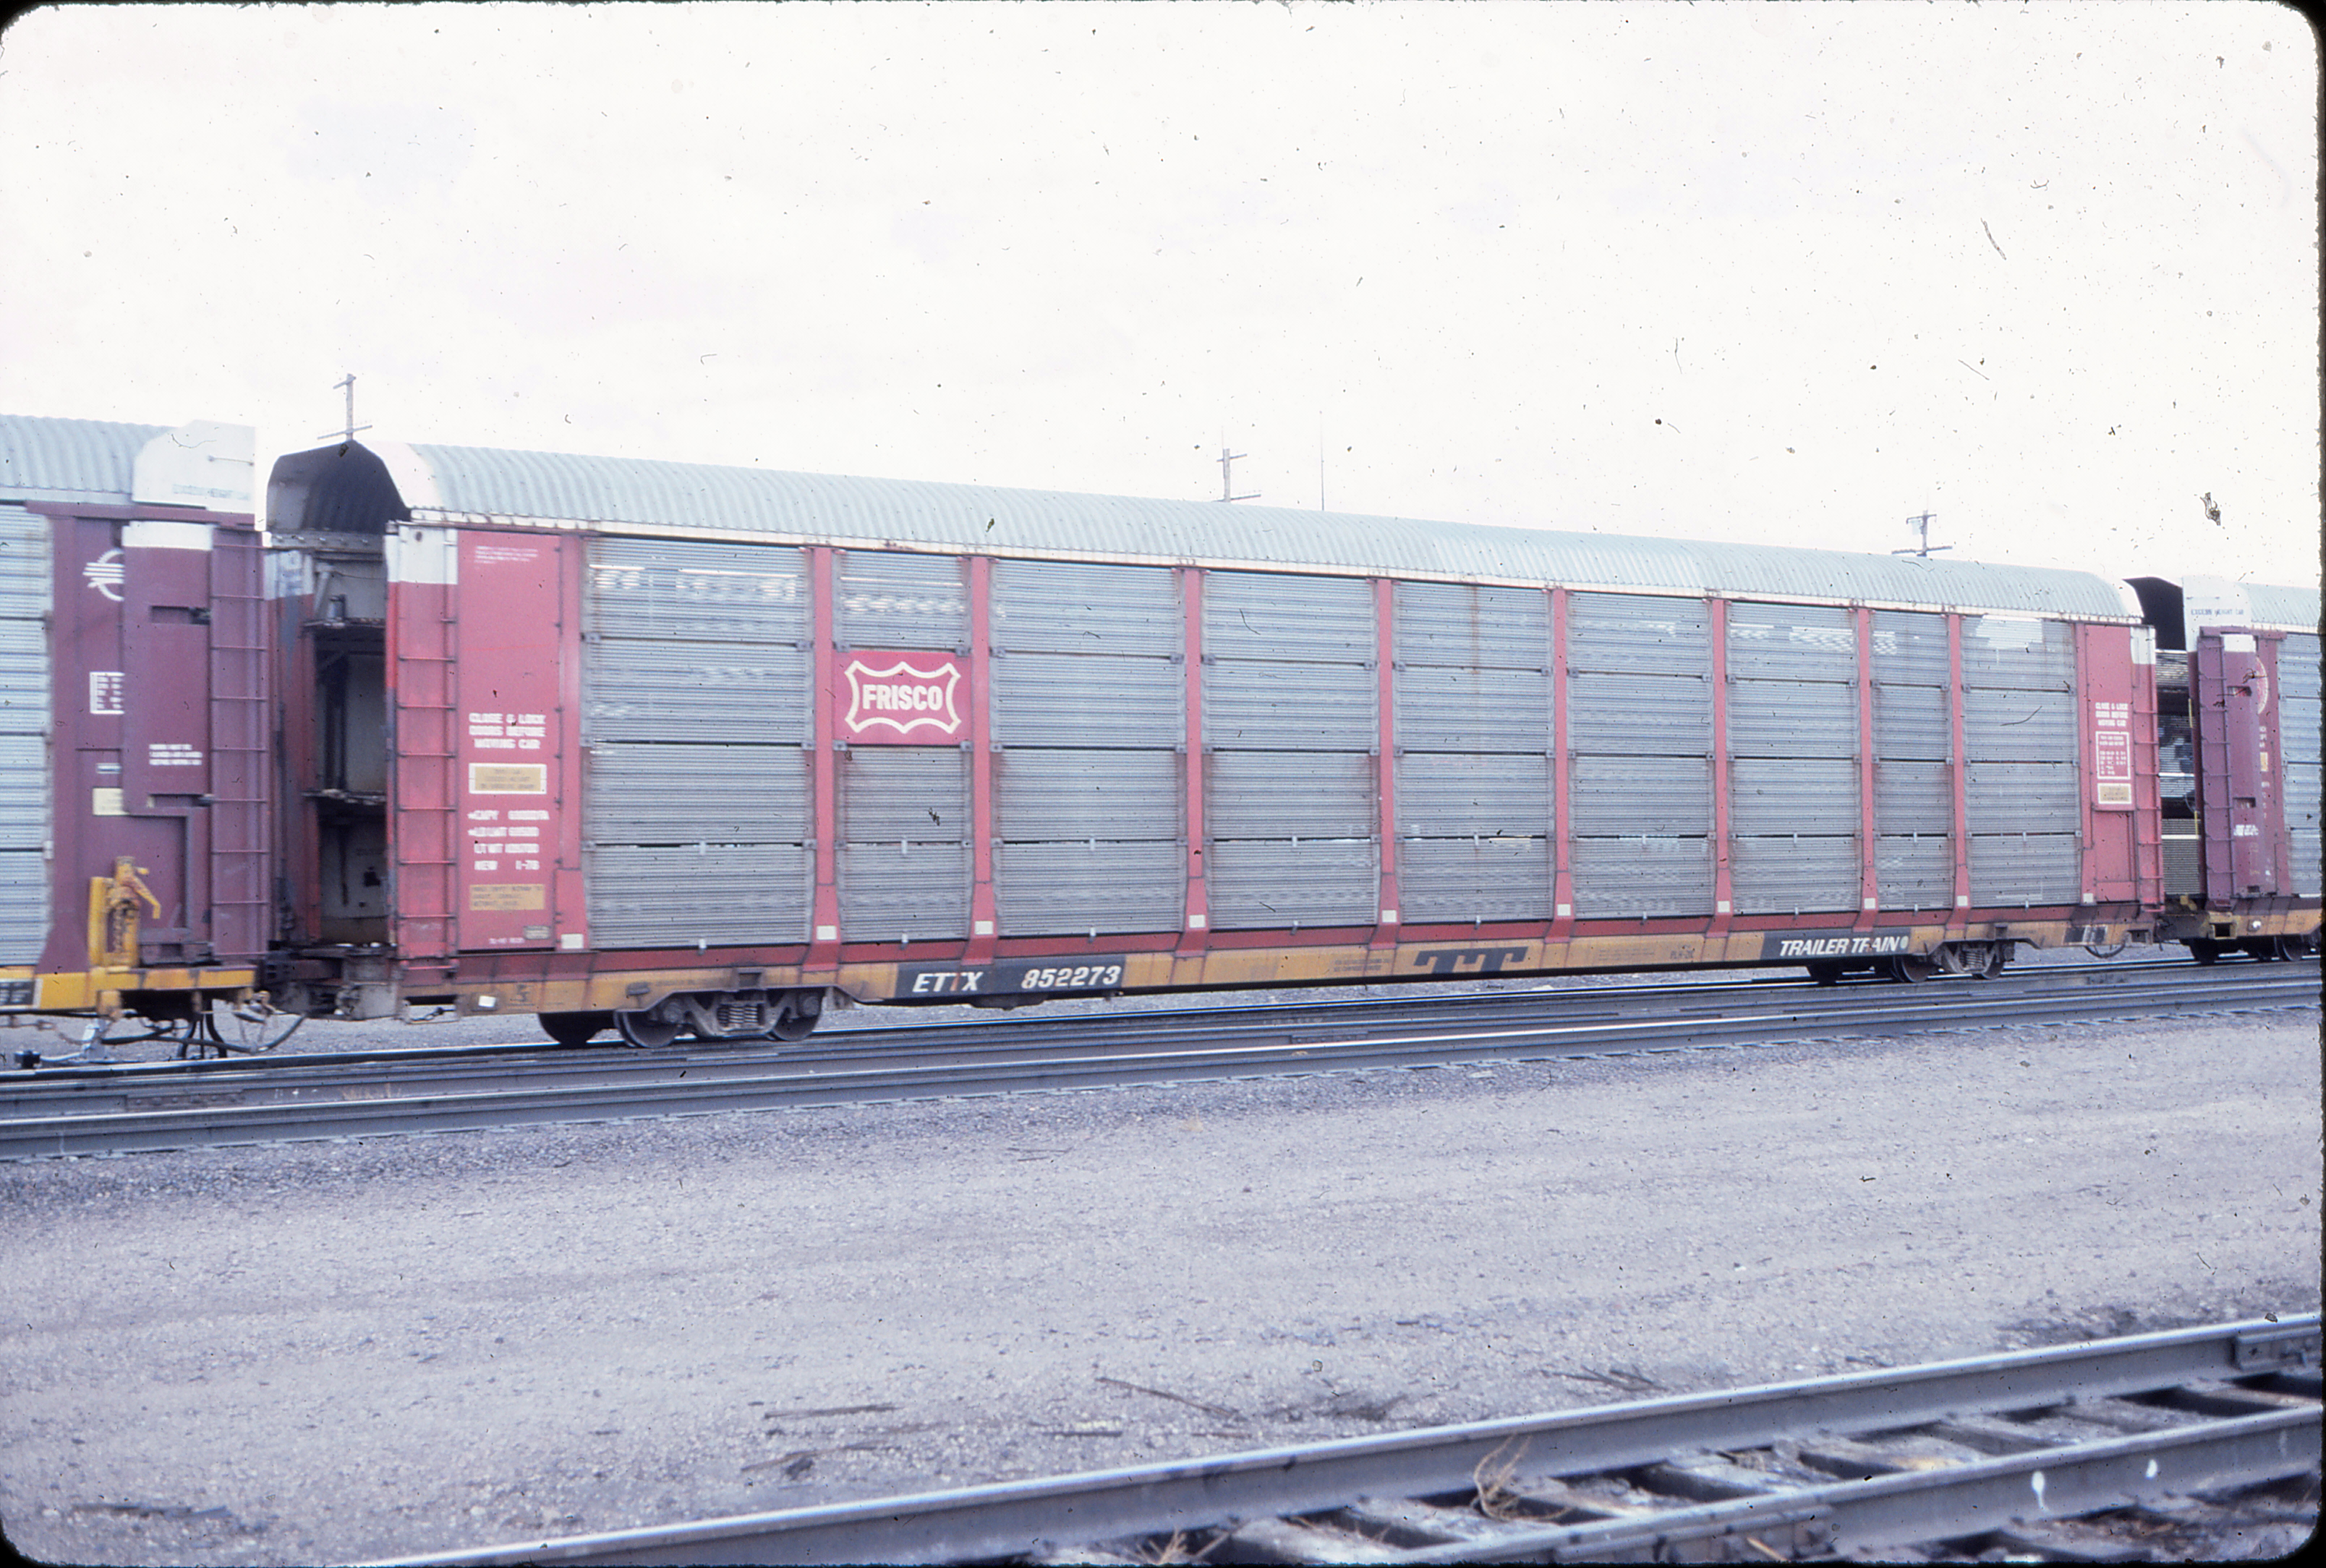 Autorack 852273 at Green River, Wyoming in August 1984